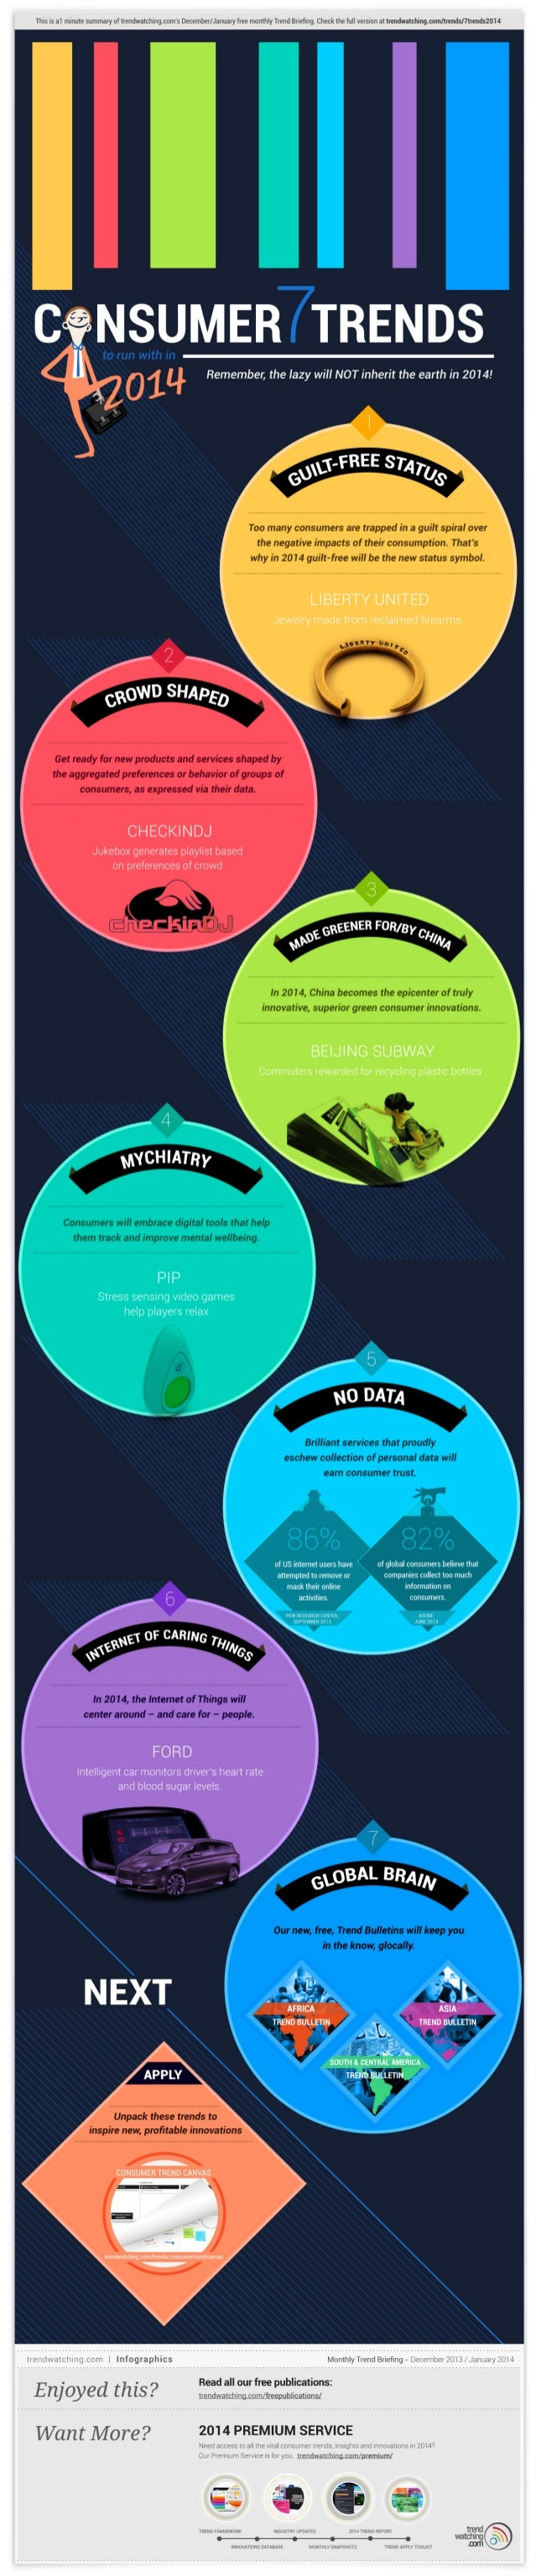 trendwatching.com's infographic 7 CONSUMER TRENDS TO RUN WITH IN 2014